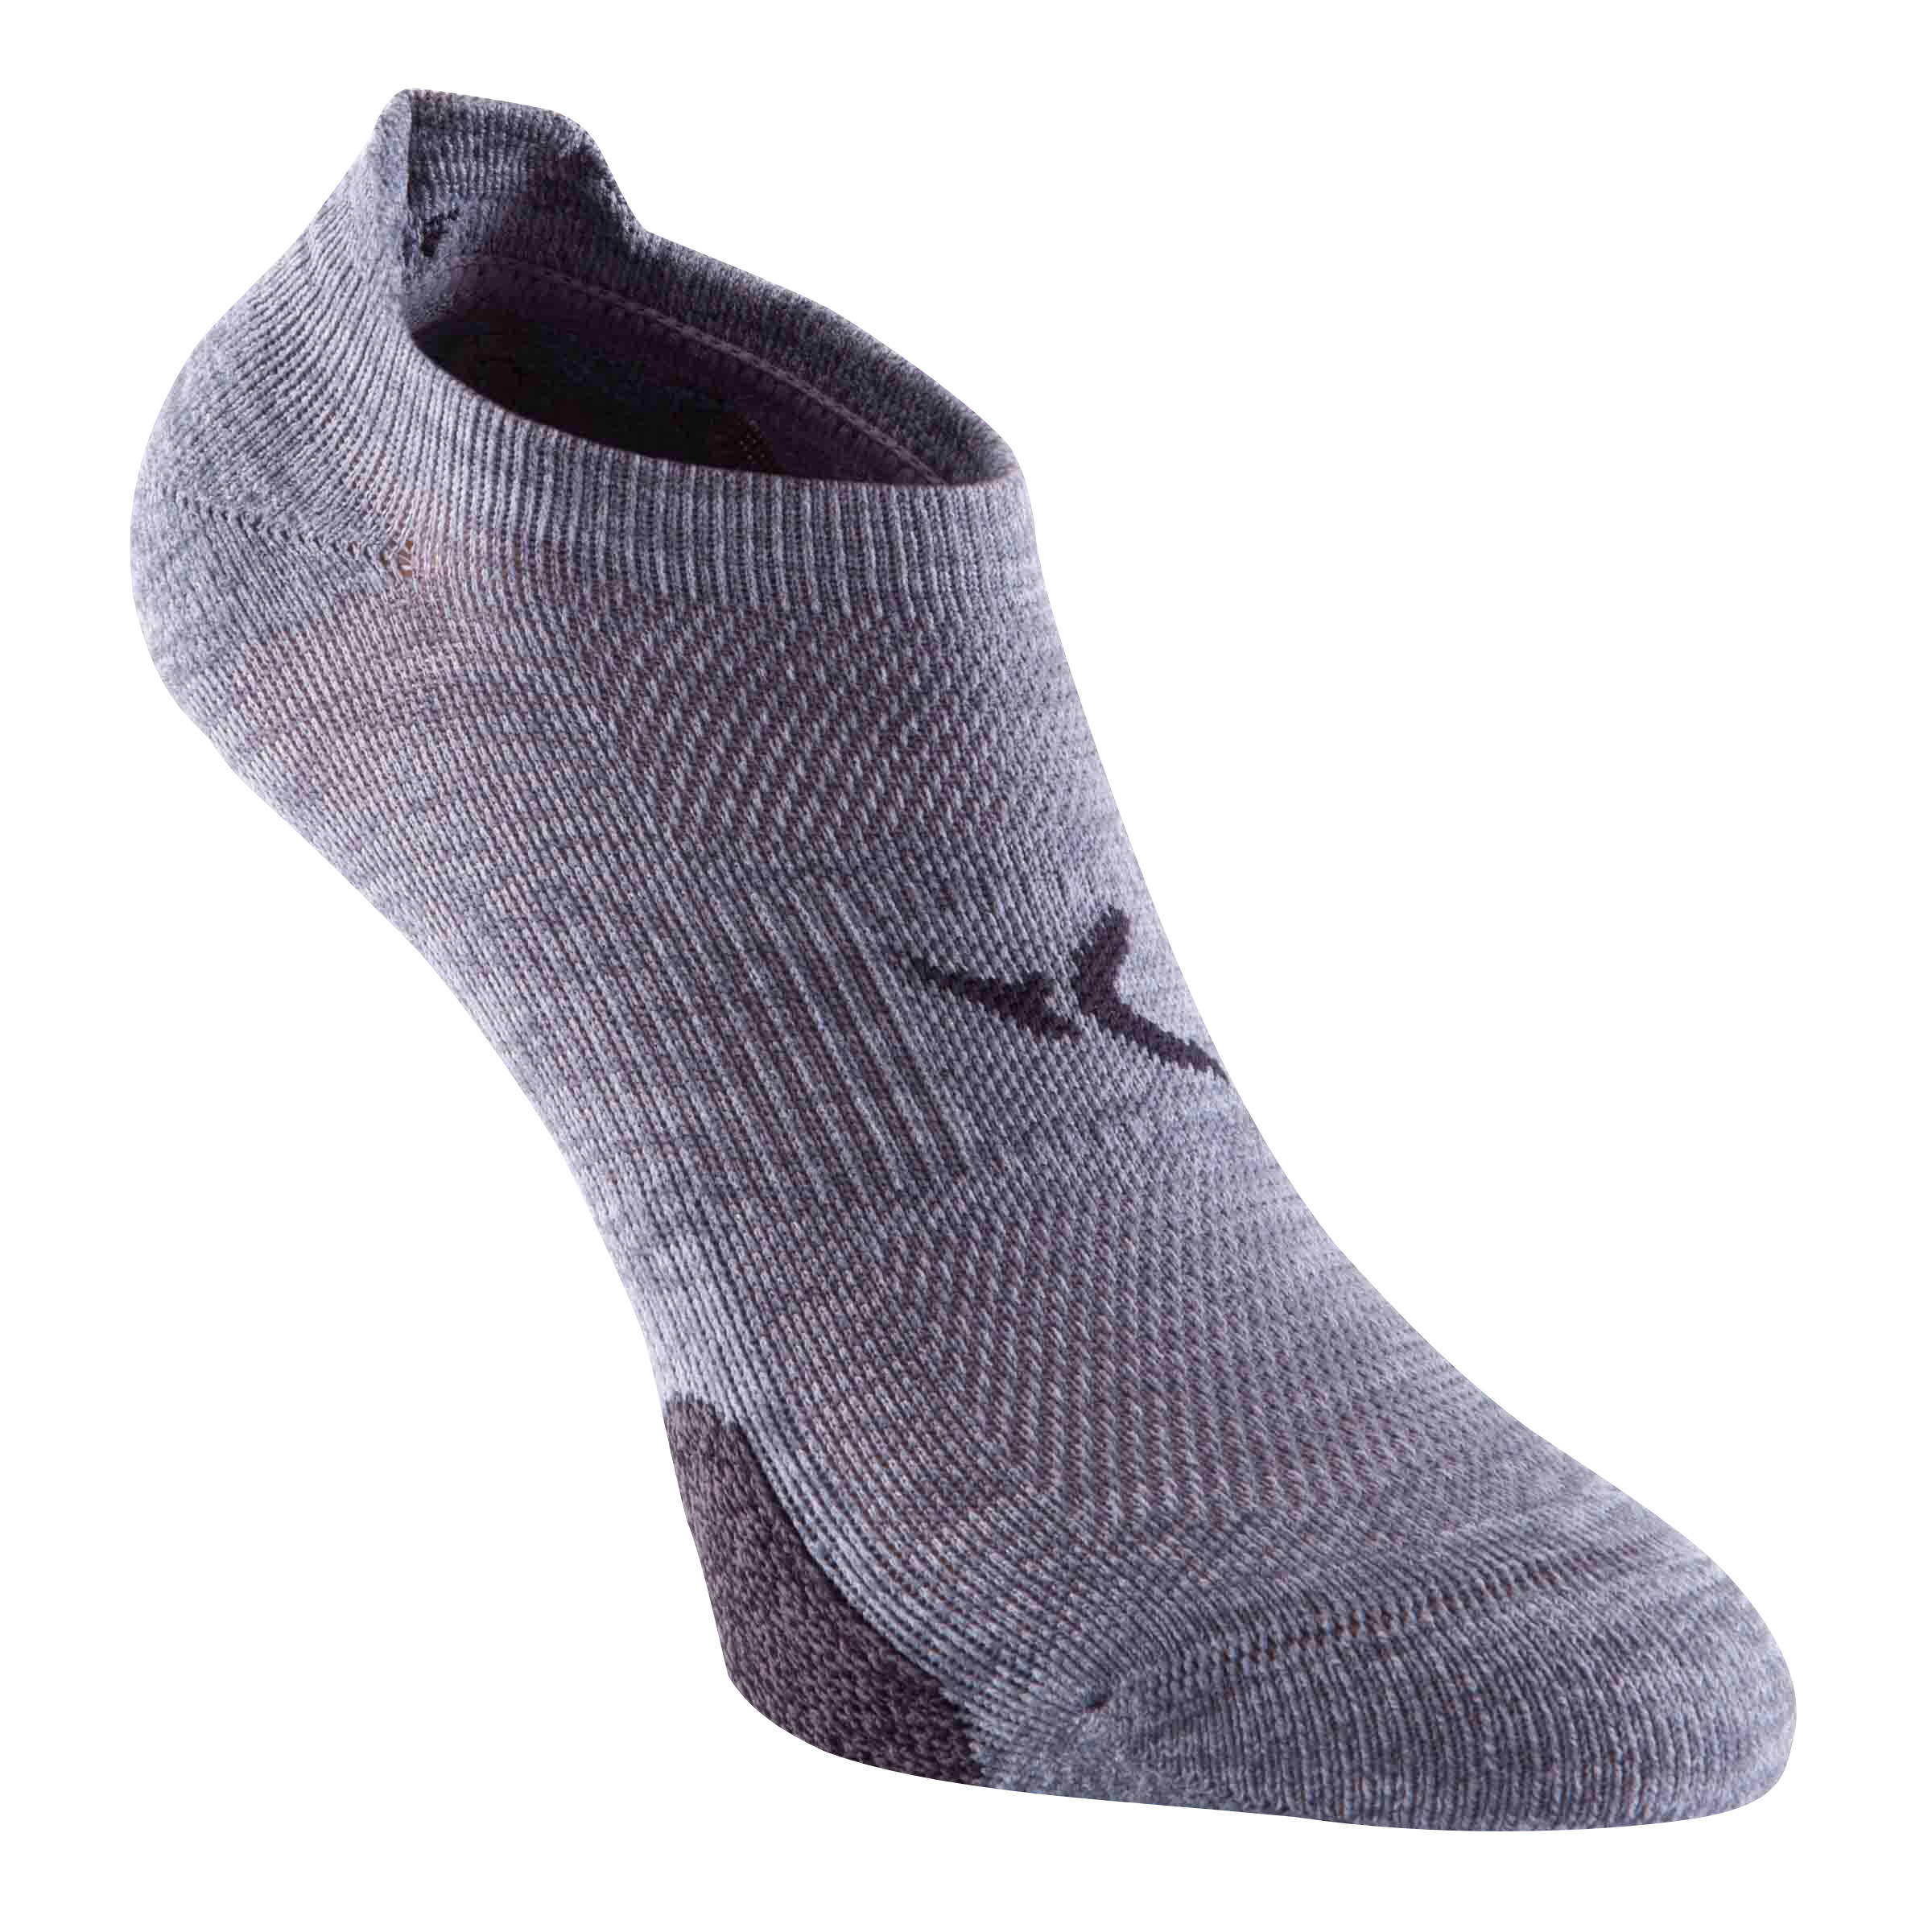 Calcetines invisibles fitness x 2 gris Domyos